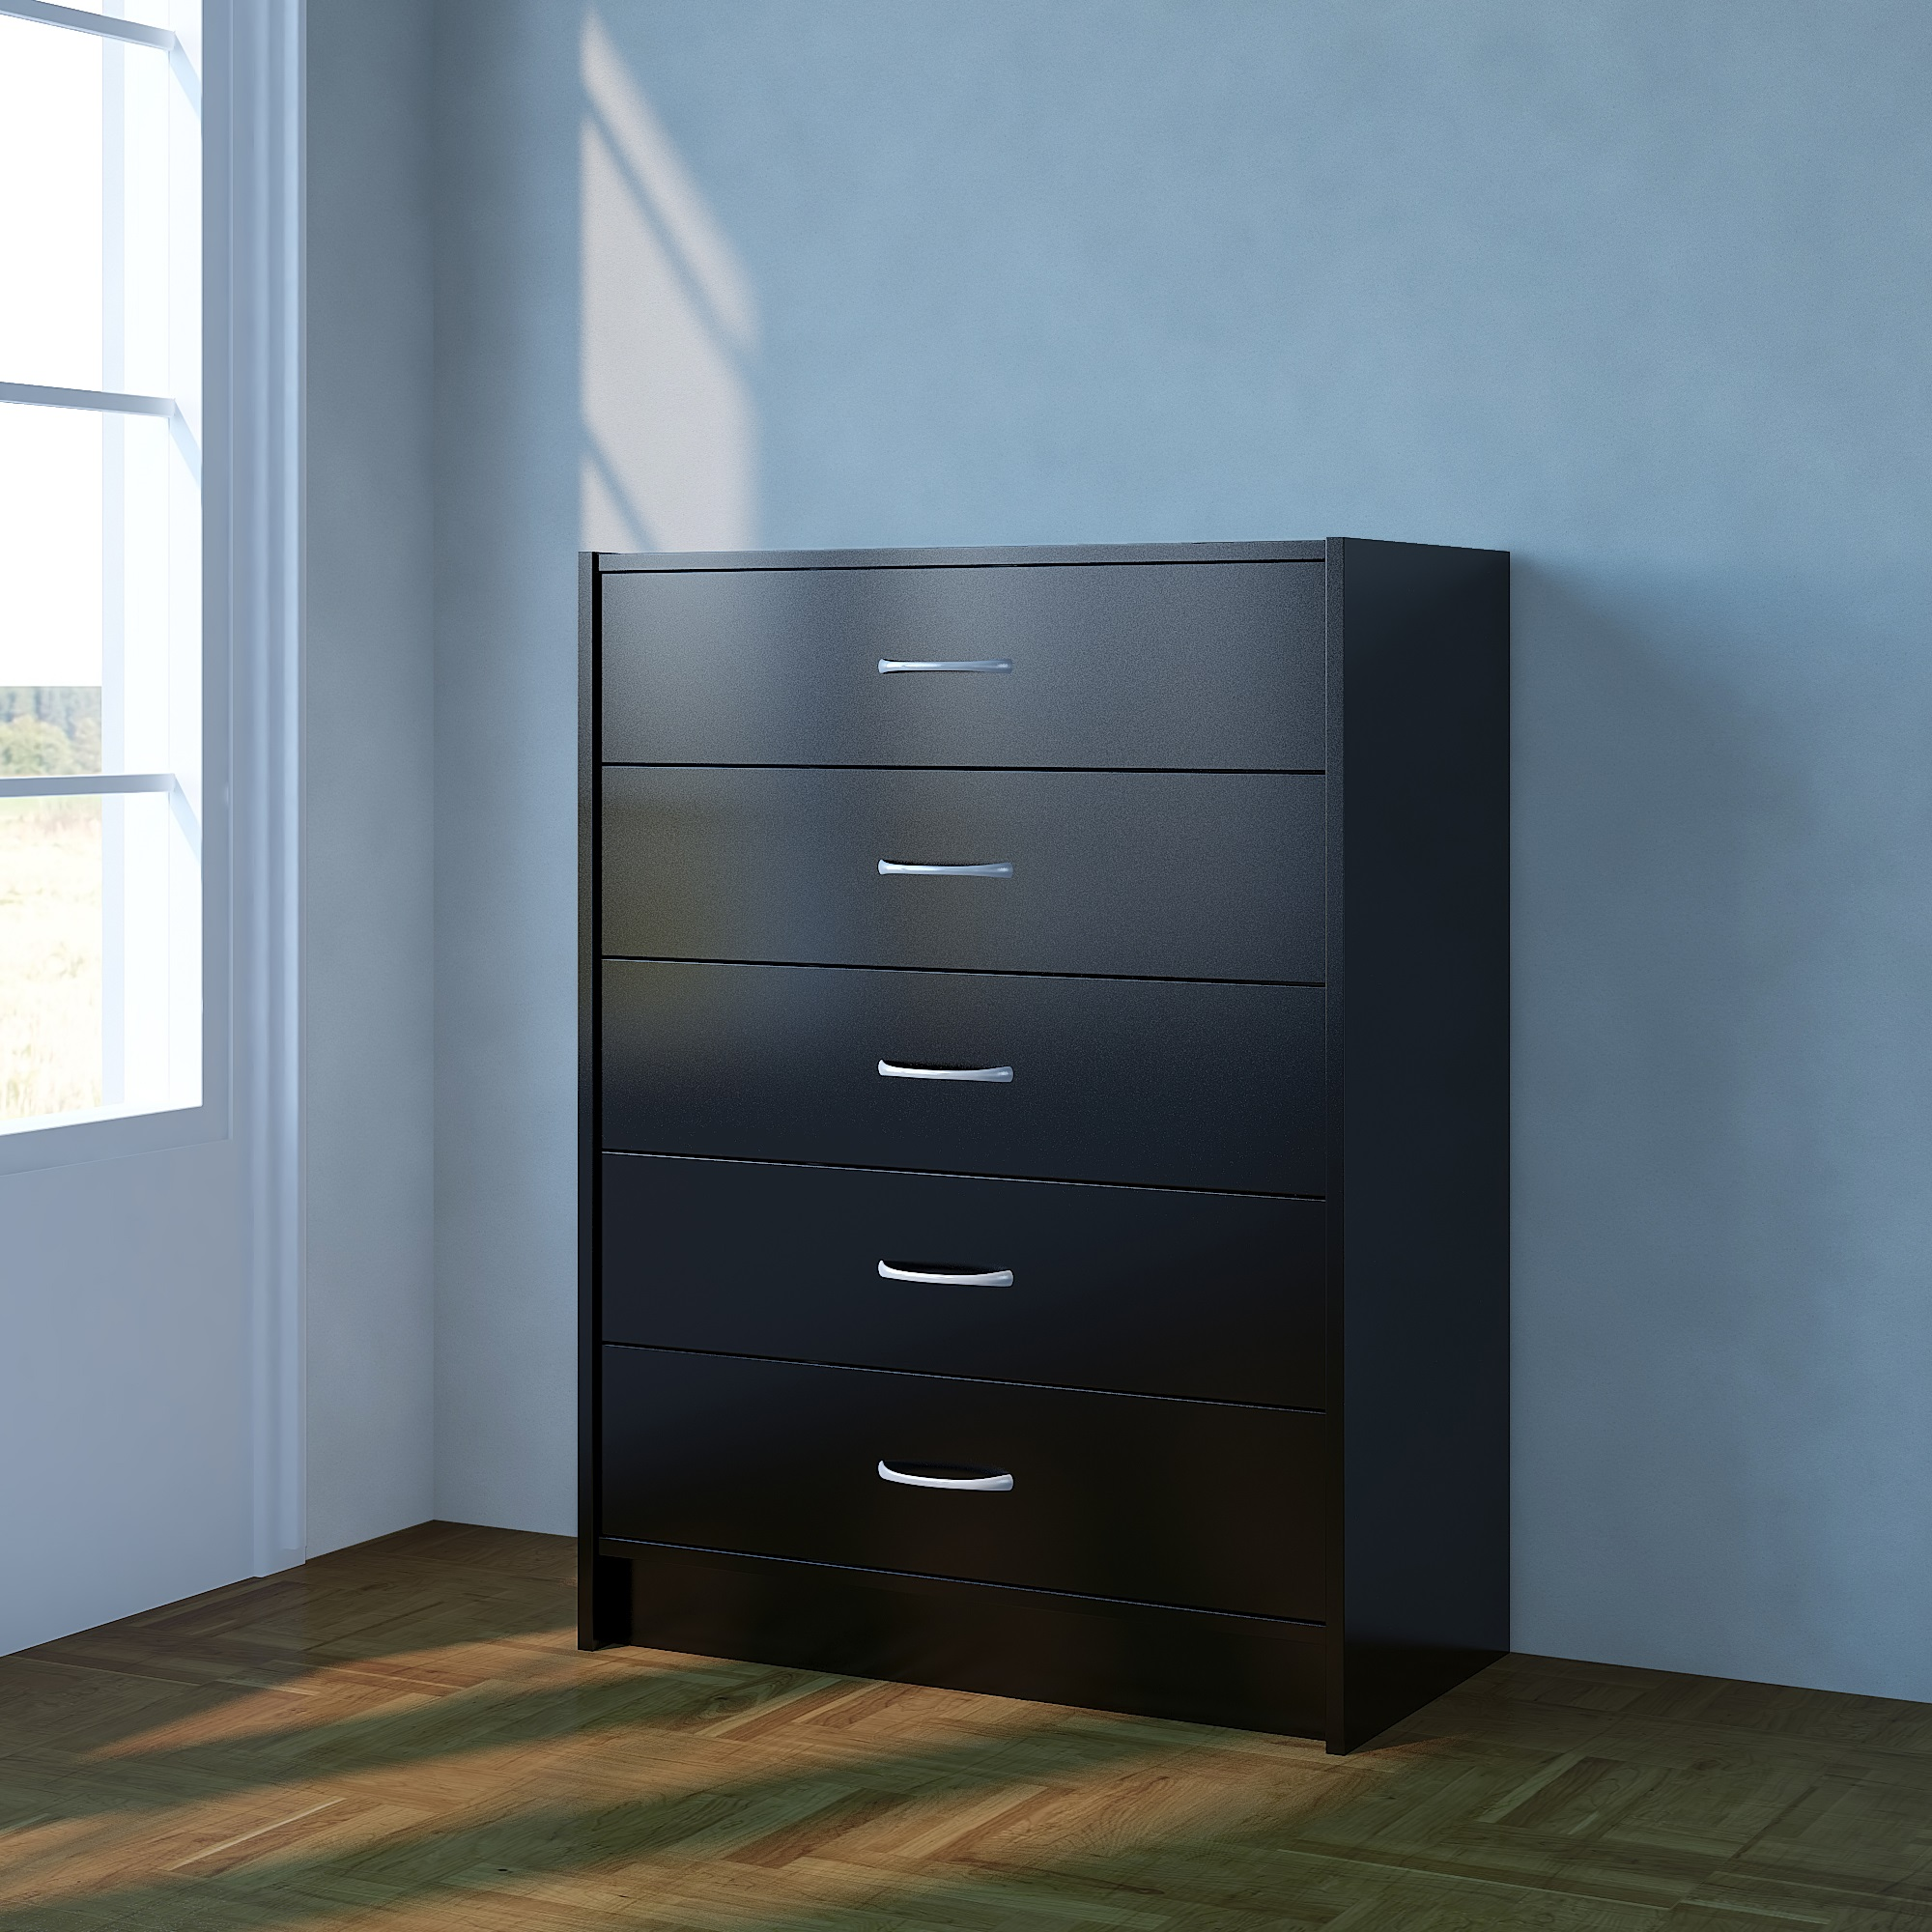 #624F32 Chest Of Drawers Black Bedroom Furniture 5 Drawer Metal Handles  with 2000x2000 px of Most Effective Black Drawers Bedroom 20002000 wallpaper @ avoidforclosure.info